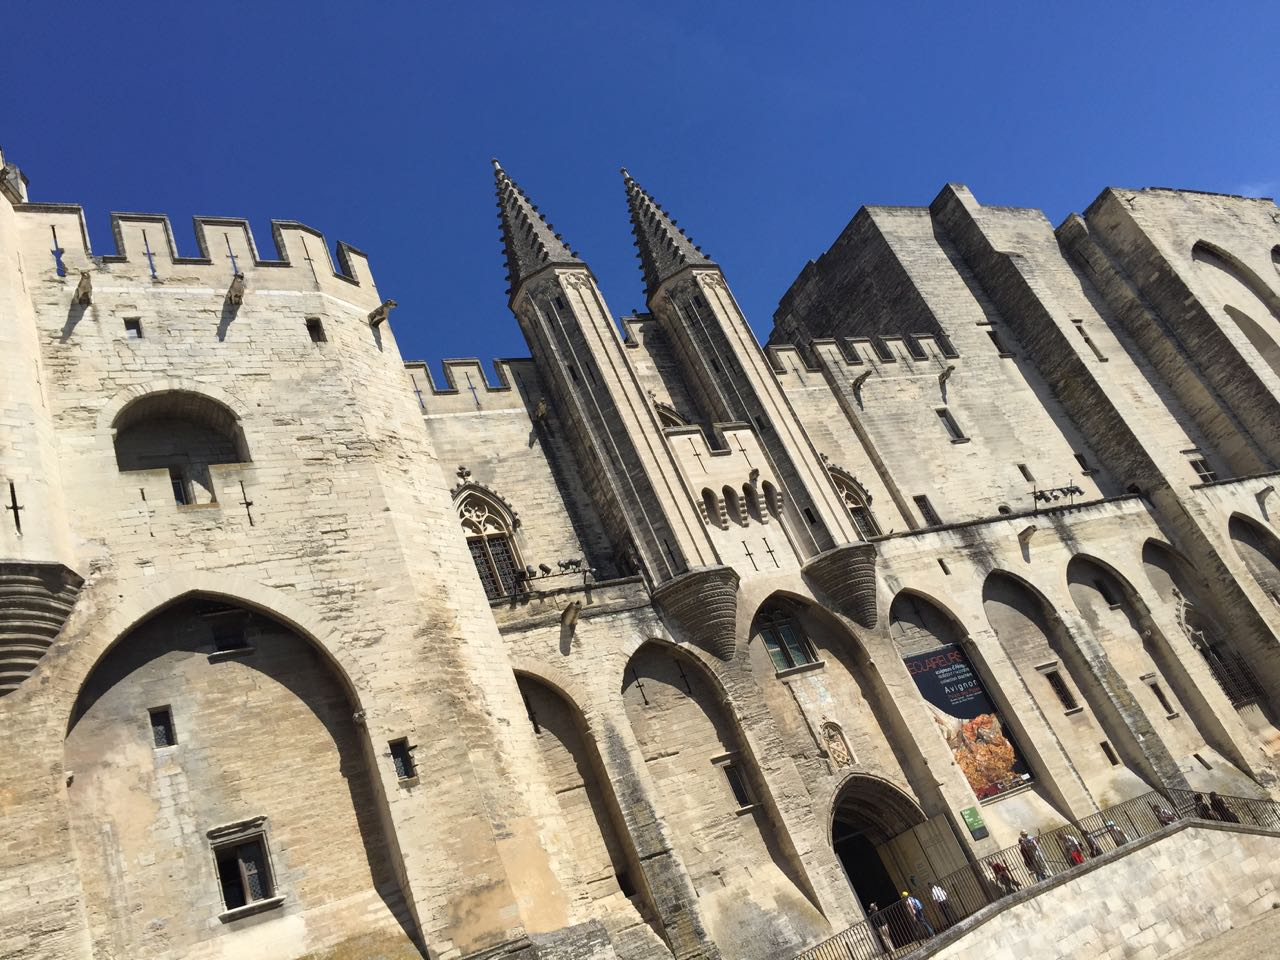 Avignon, the Popes Palace and the festival